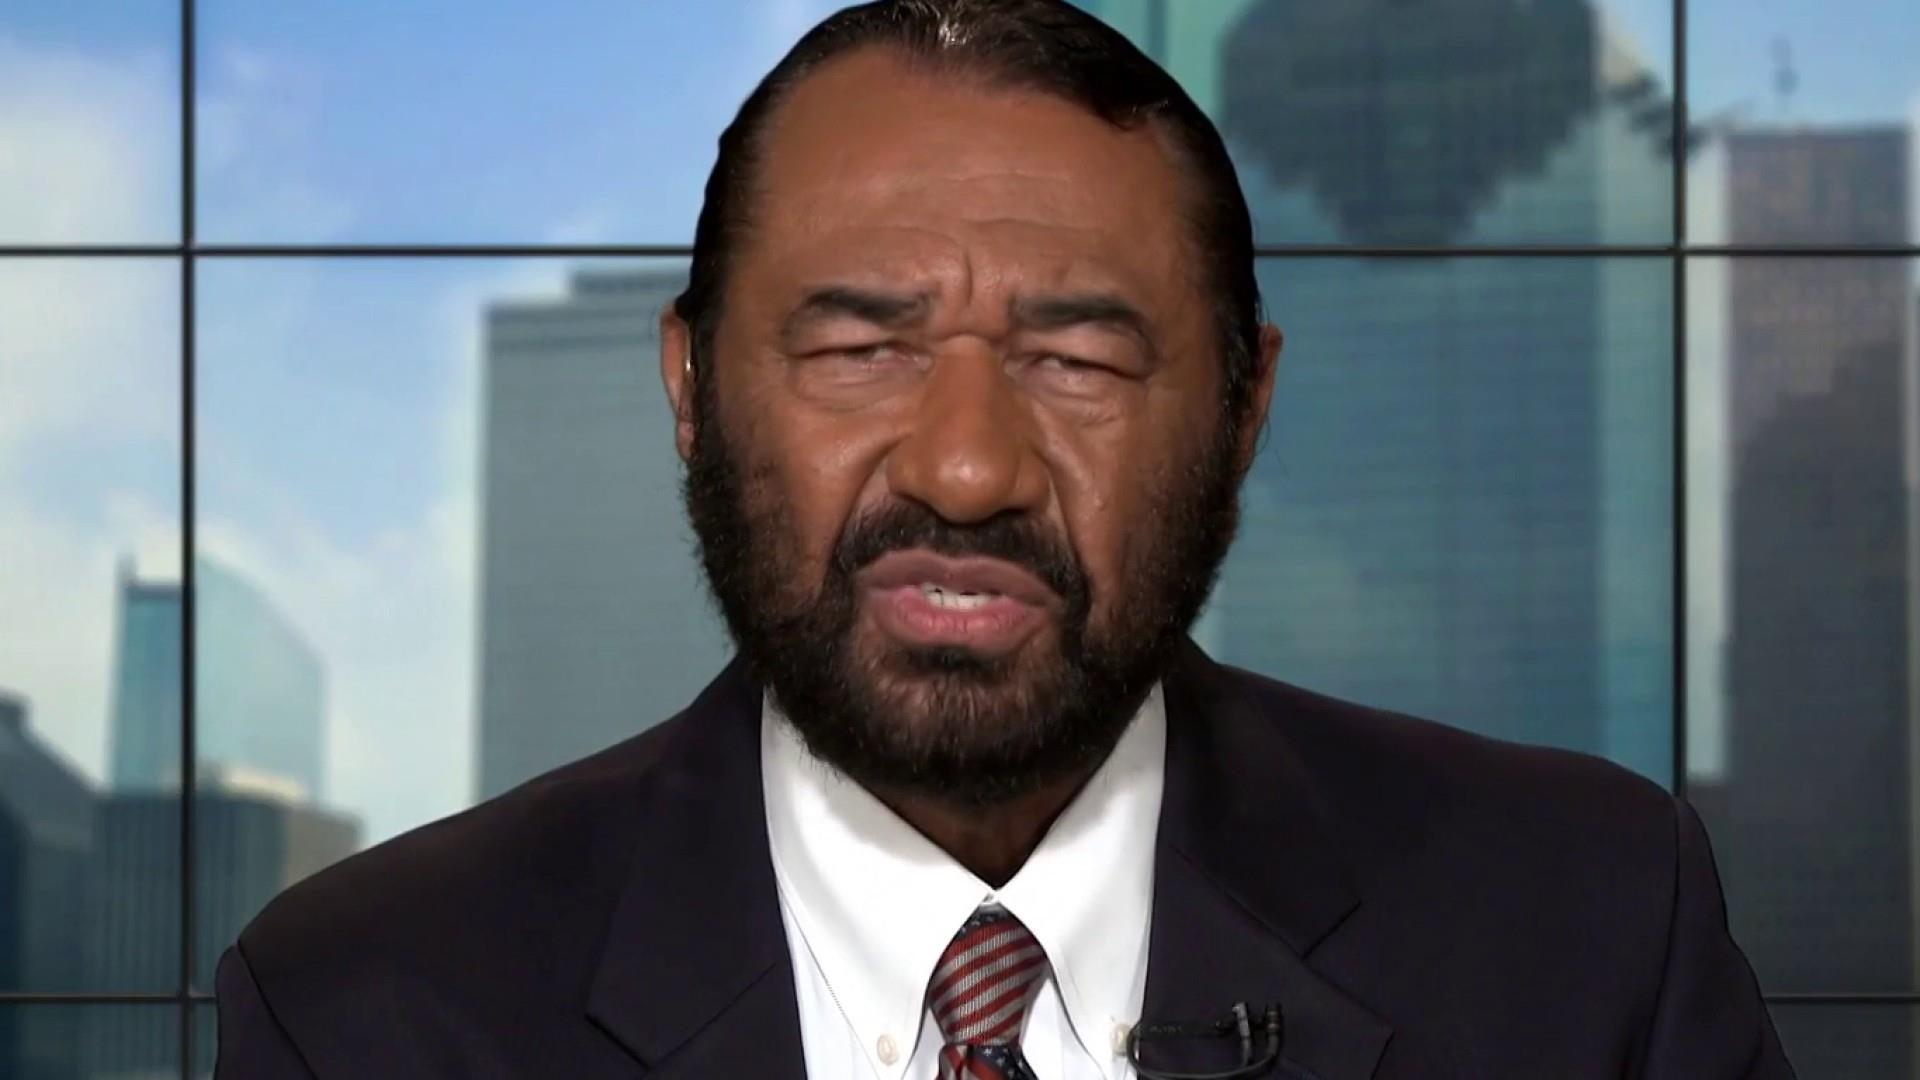 Rep. Al Green: I know what 'send them back' means. It's been said to me.